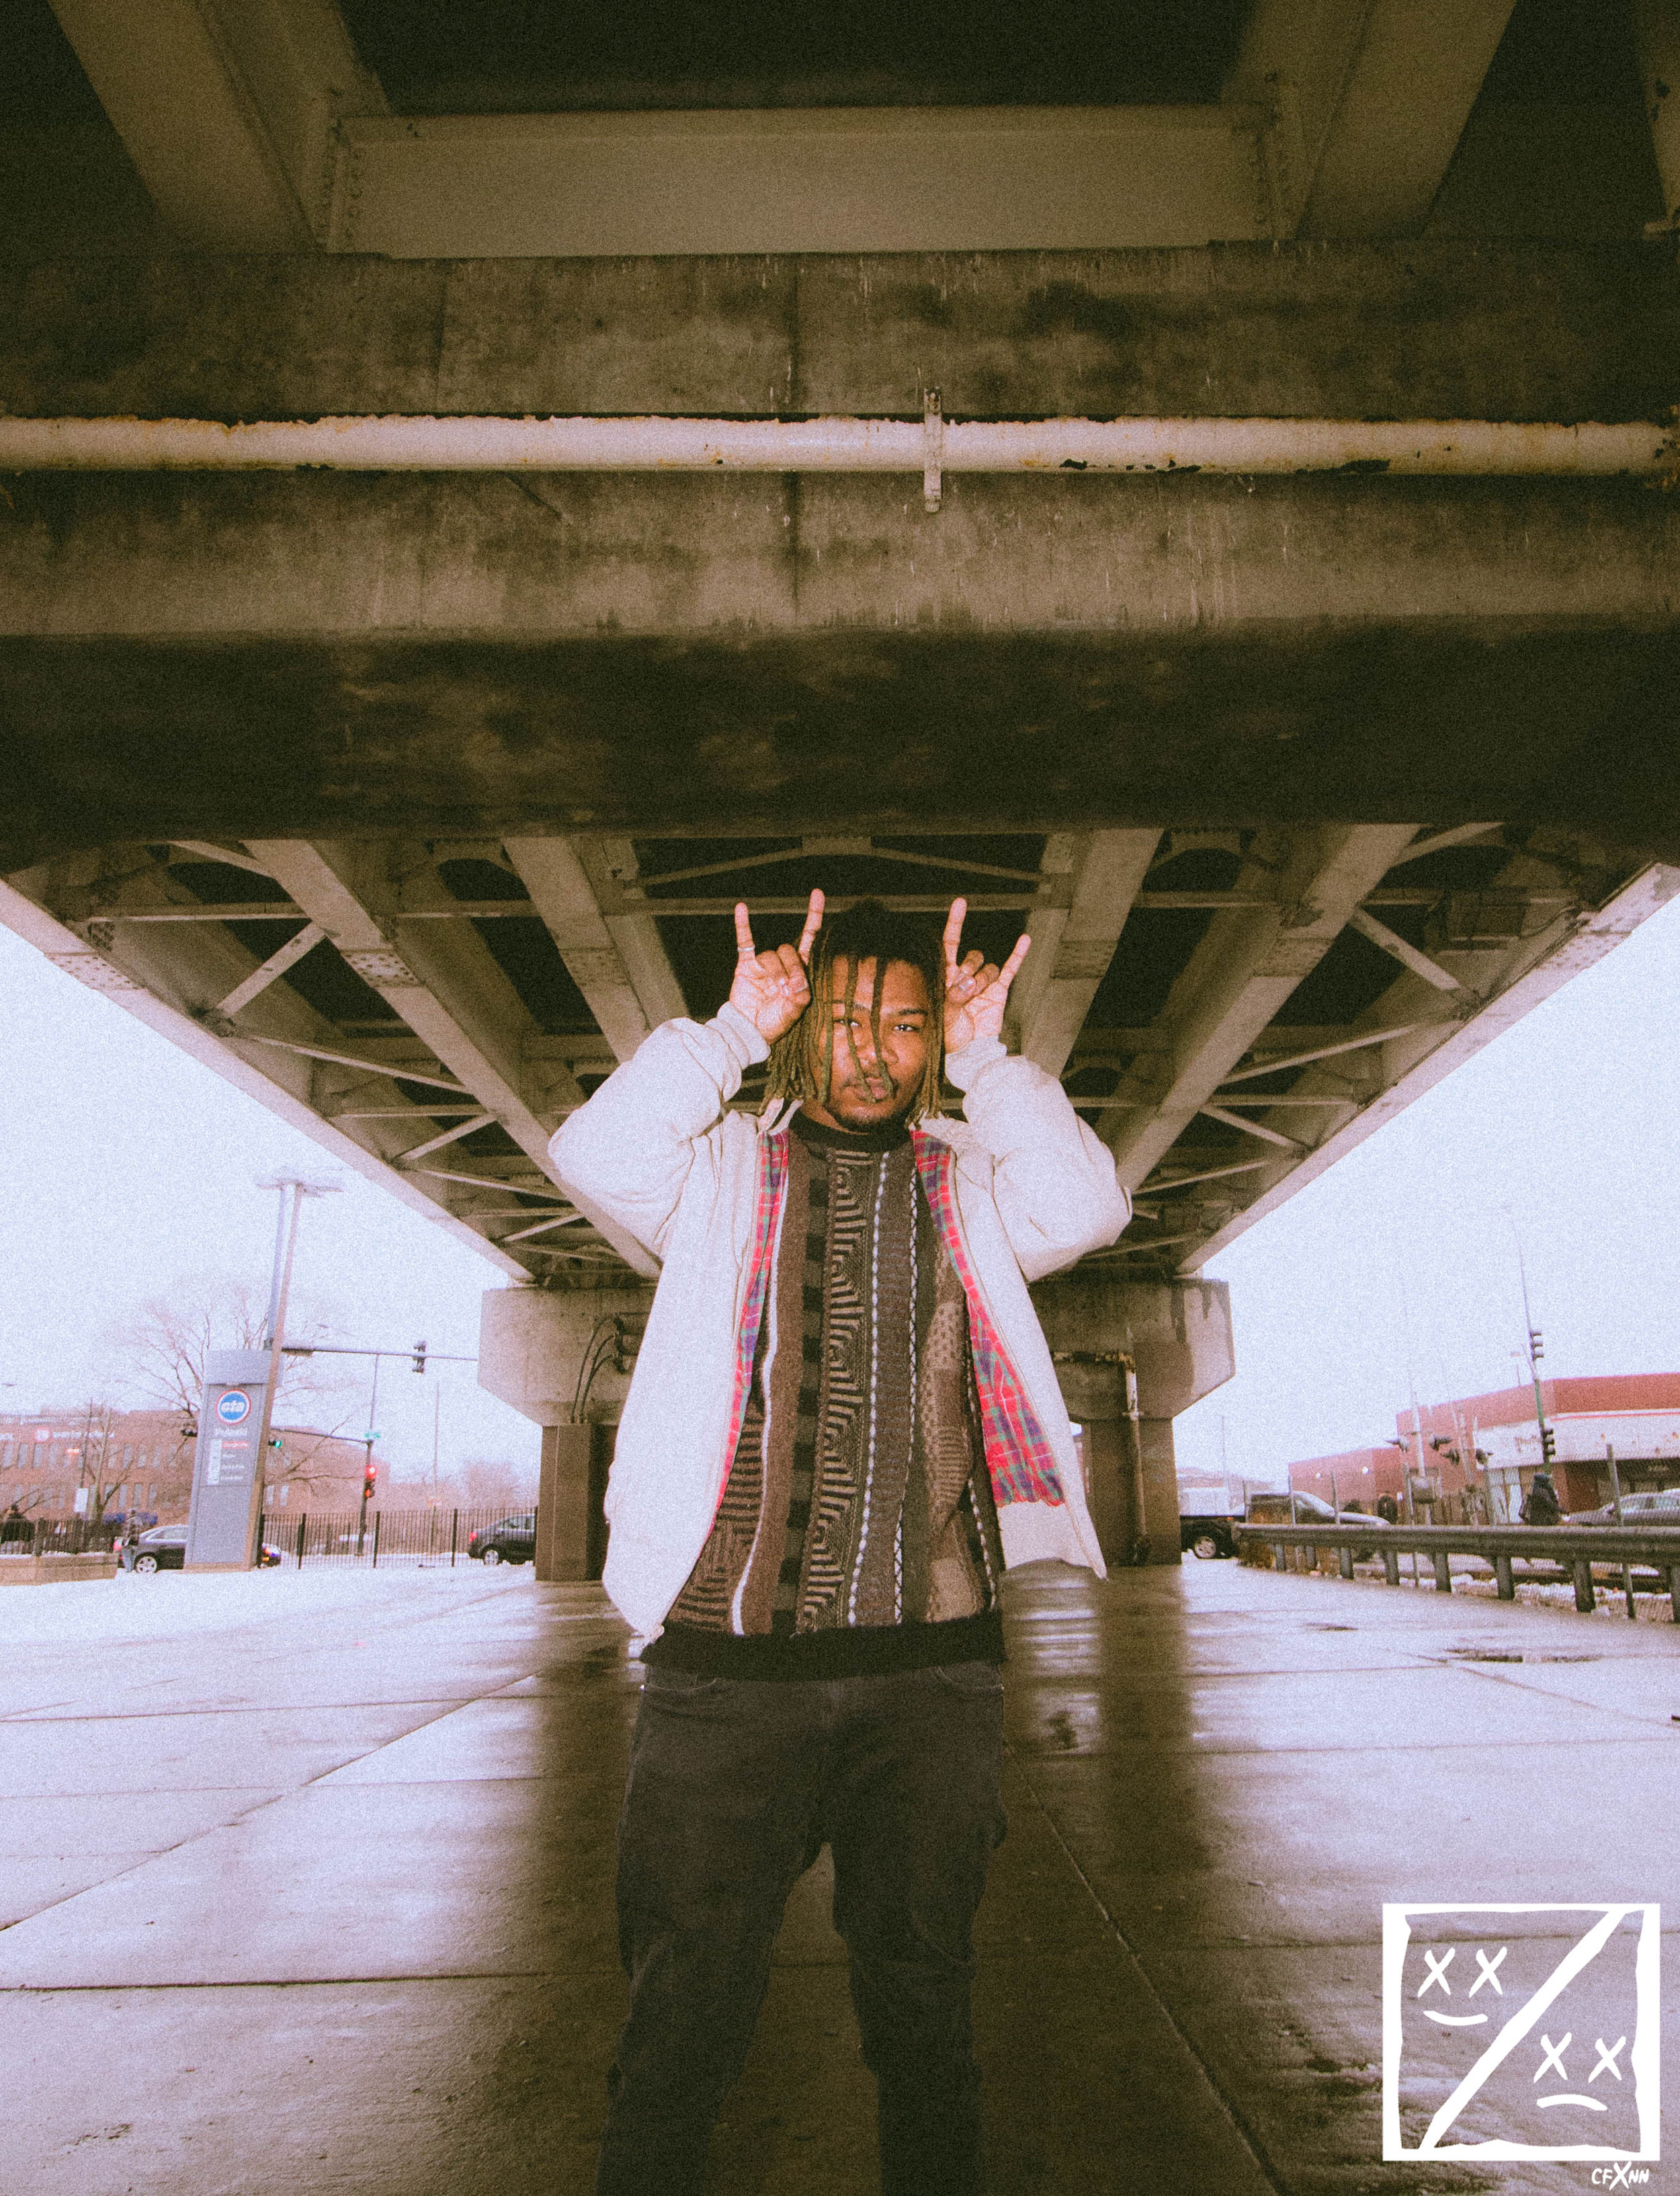 """"""" I aint f*ckin' movin', I ain't changin' my lane"""" - A relatively new star on the underground Chicago scene, CozyBoyNosey has been making his rounds with Chicago's new wave of music. Working with artists like IggyBoySlash, Dutcho!, KidCupid and Marzo XYX, Nosey has constructed a distinct sound that is dominated by melodic genius and catchy rhyme schemes.On Nosey's new song, that same melodic energy and wordplay paints a melodramatic scene of Chicago business, heartbreak and lust that is fit for an evening drive along Lake Shore Drive. The message is clear, Nosey is here to stay and isn't changing for anyone.Stream RIP // QP below and stay up to date with Nosey on new releases via Instagram!Shot by Chris Finn @Cfxnn"""